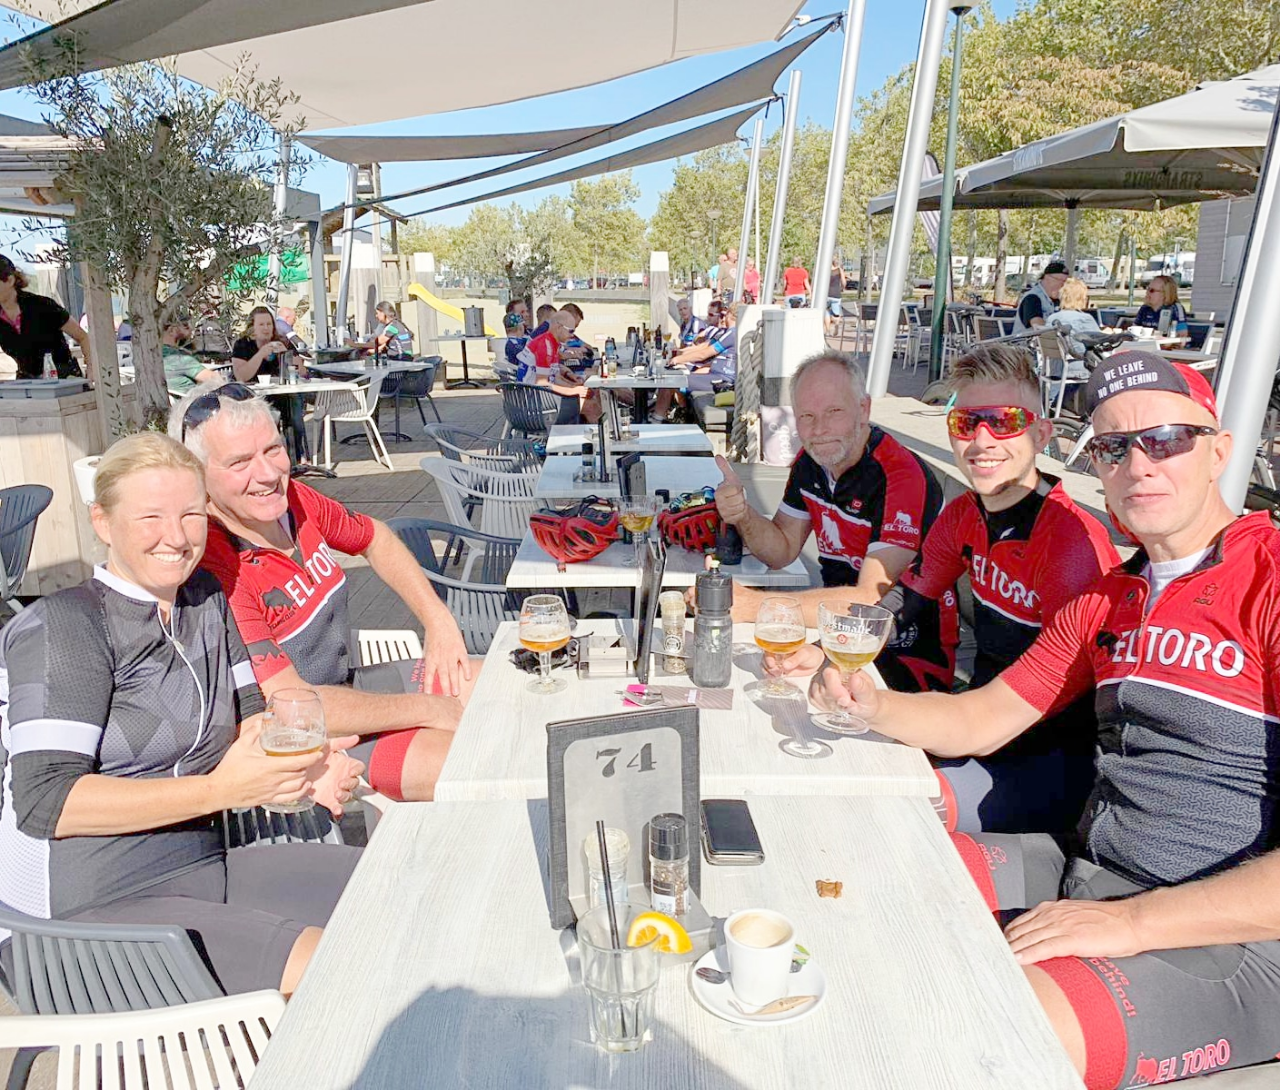 Photo of 22 september, De zondag na de fantastische LadiesRide 2019.